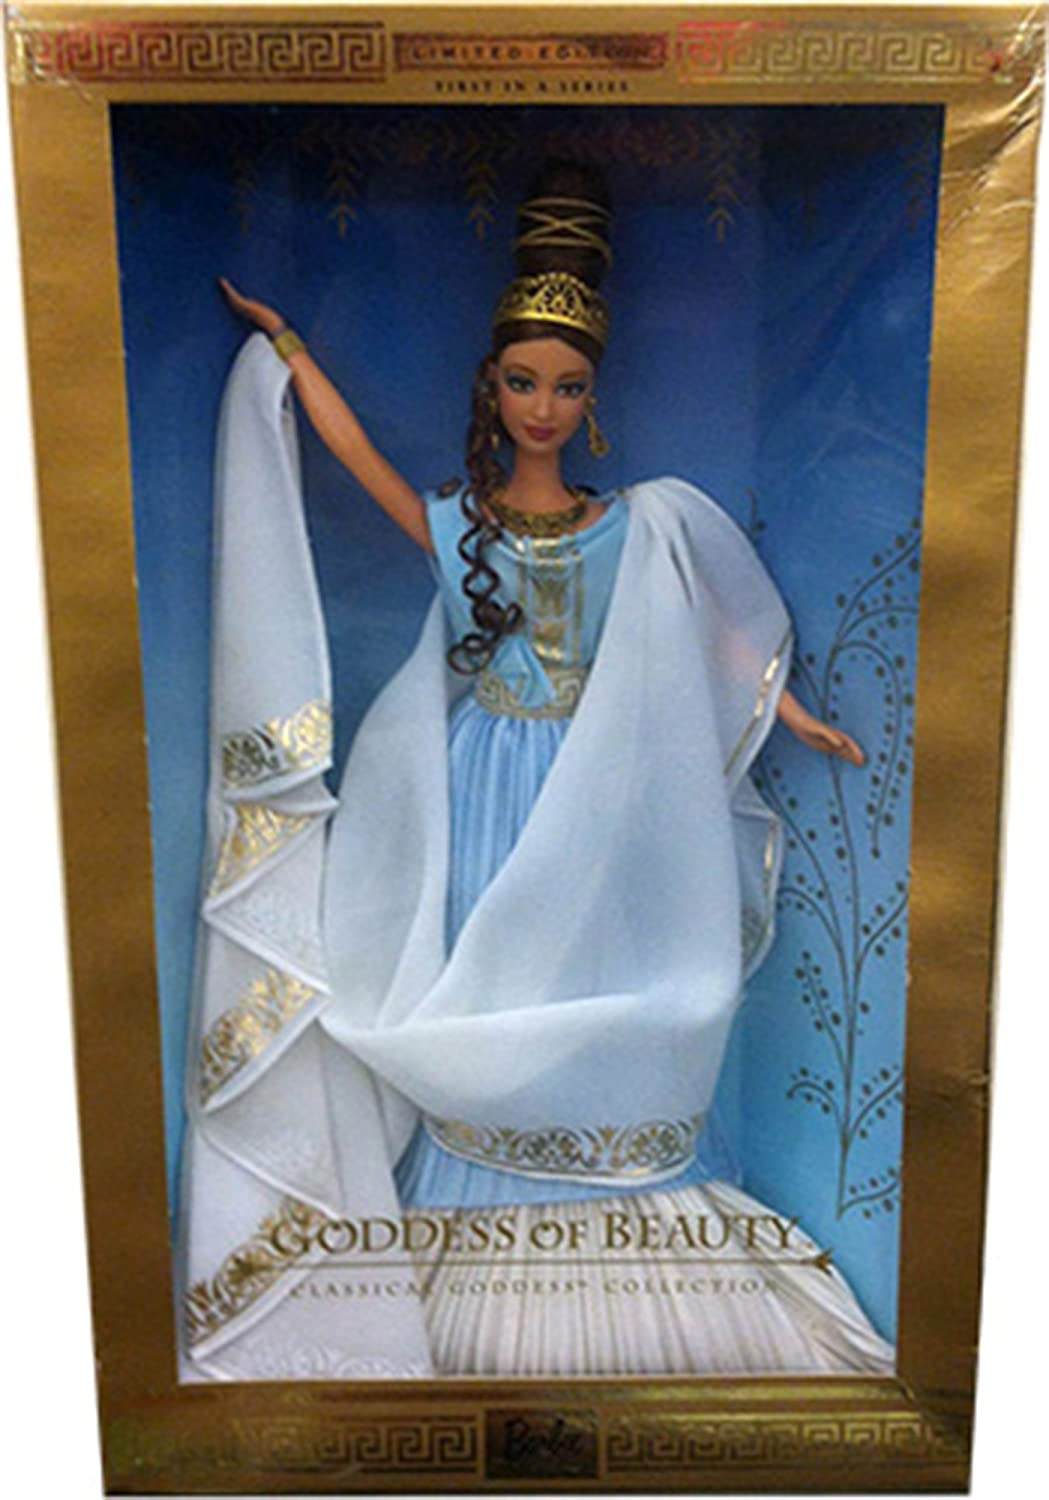 Barbie Collector # 27286 Goddess of Beauty Mattel